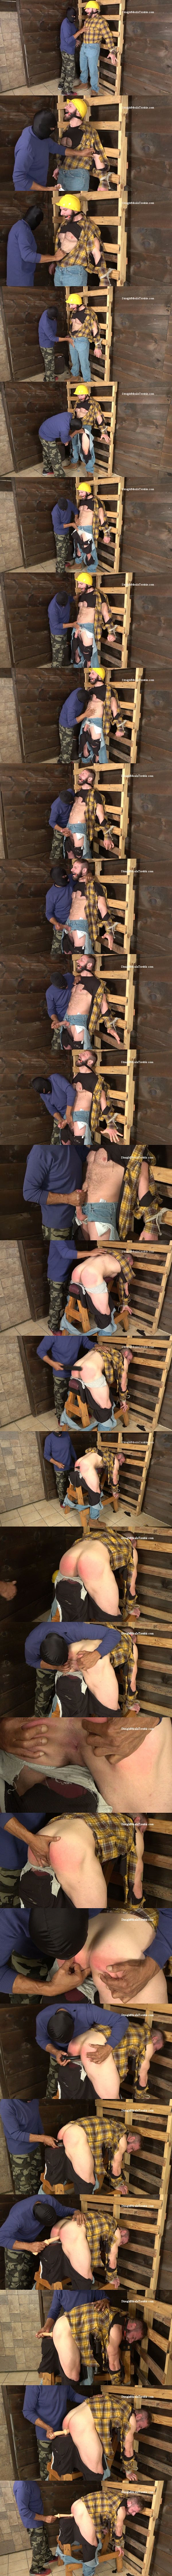 Masculine straight contruction worker Anthony gets bound, gagged, jerked off, spanked, fingered and dildoed by a masked perverted guy in Utility Worker Revenge at Straightmenintrouble 01